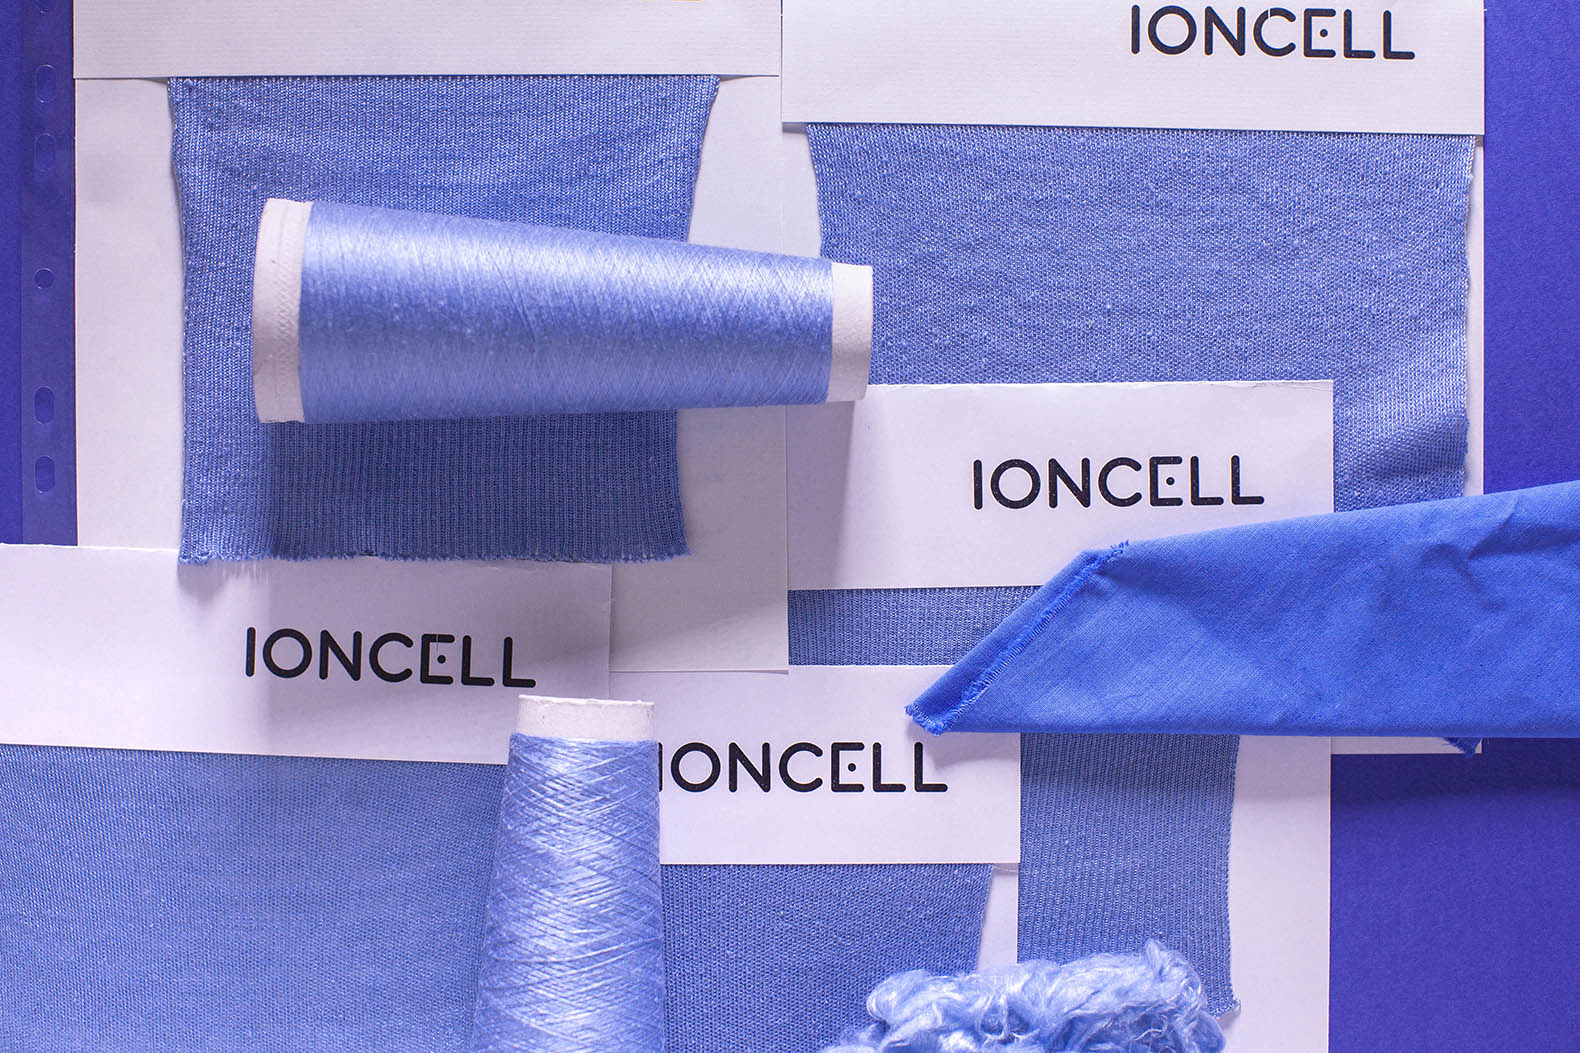 Ioncell technology creates eco-textile clothing fibers from birch trees